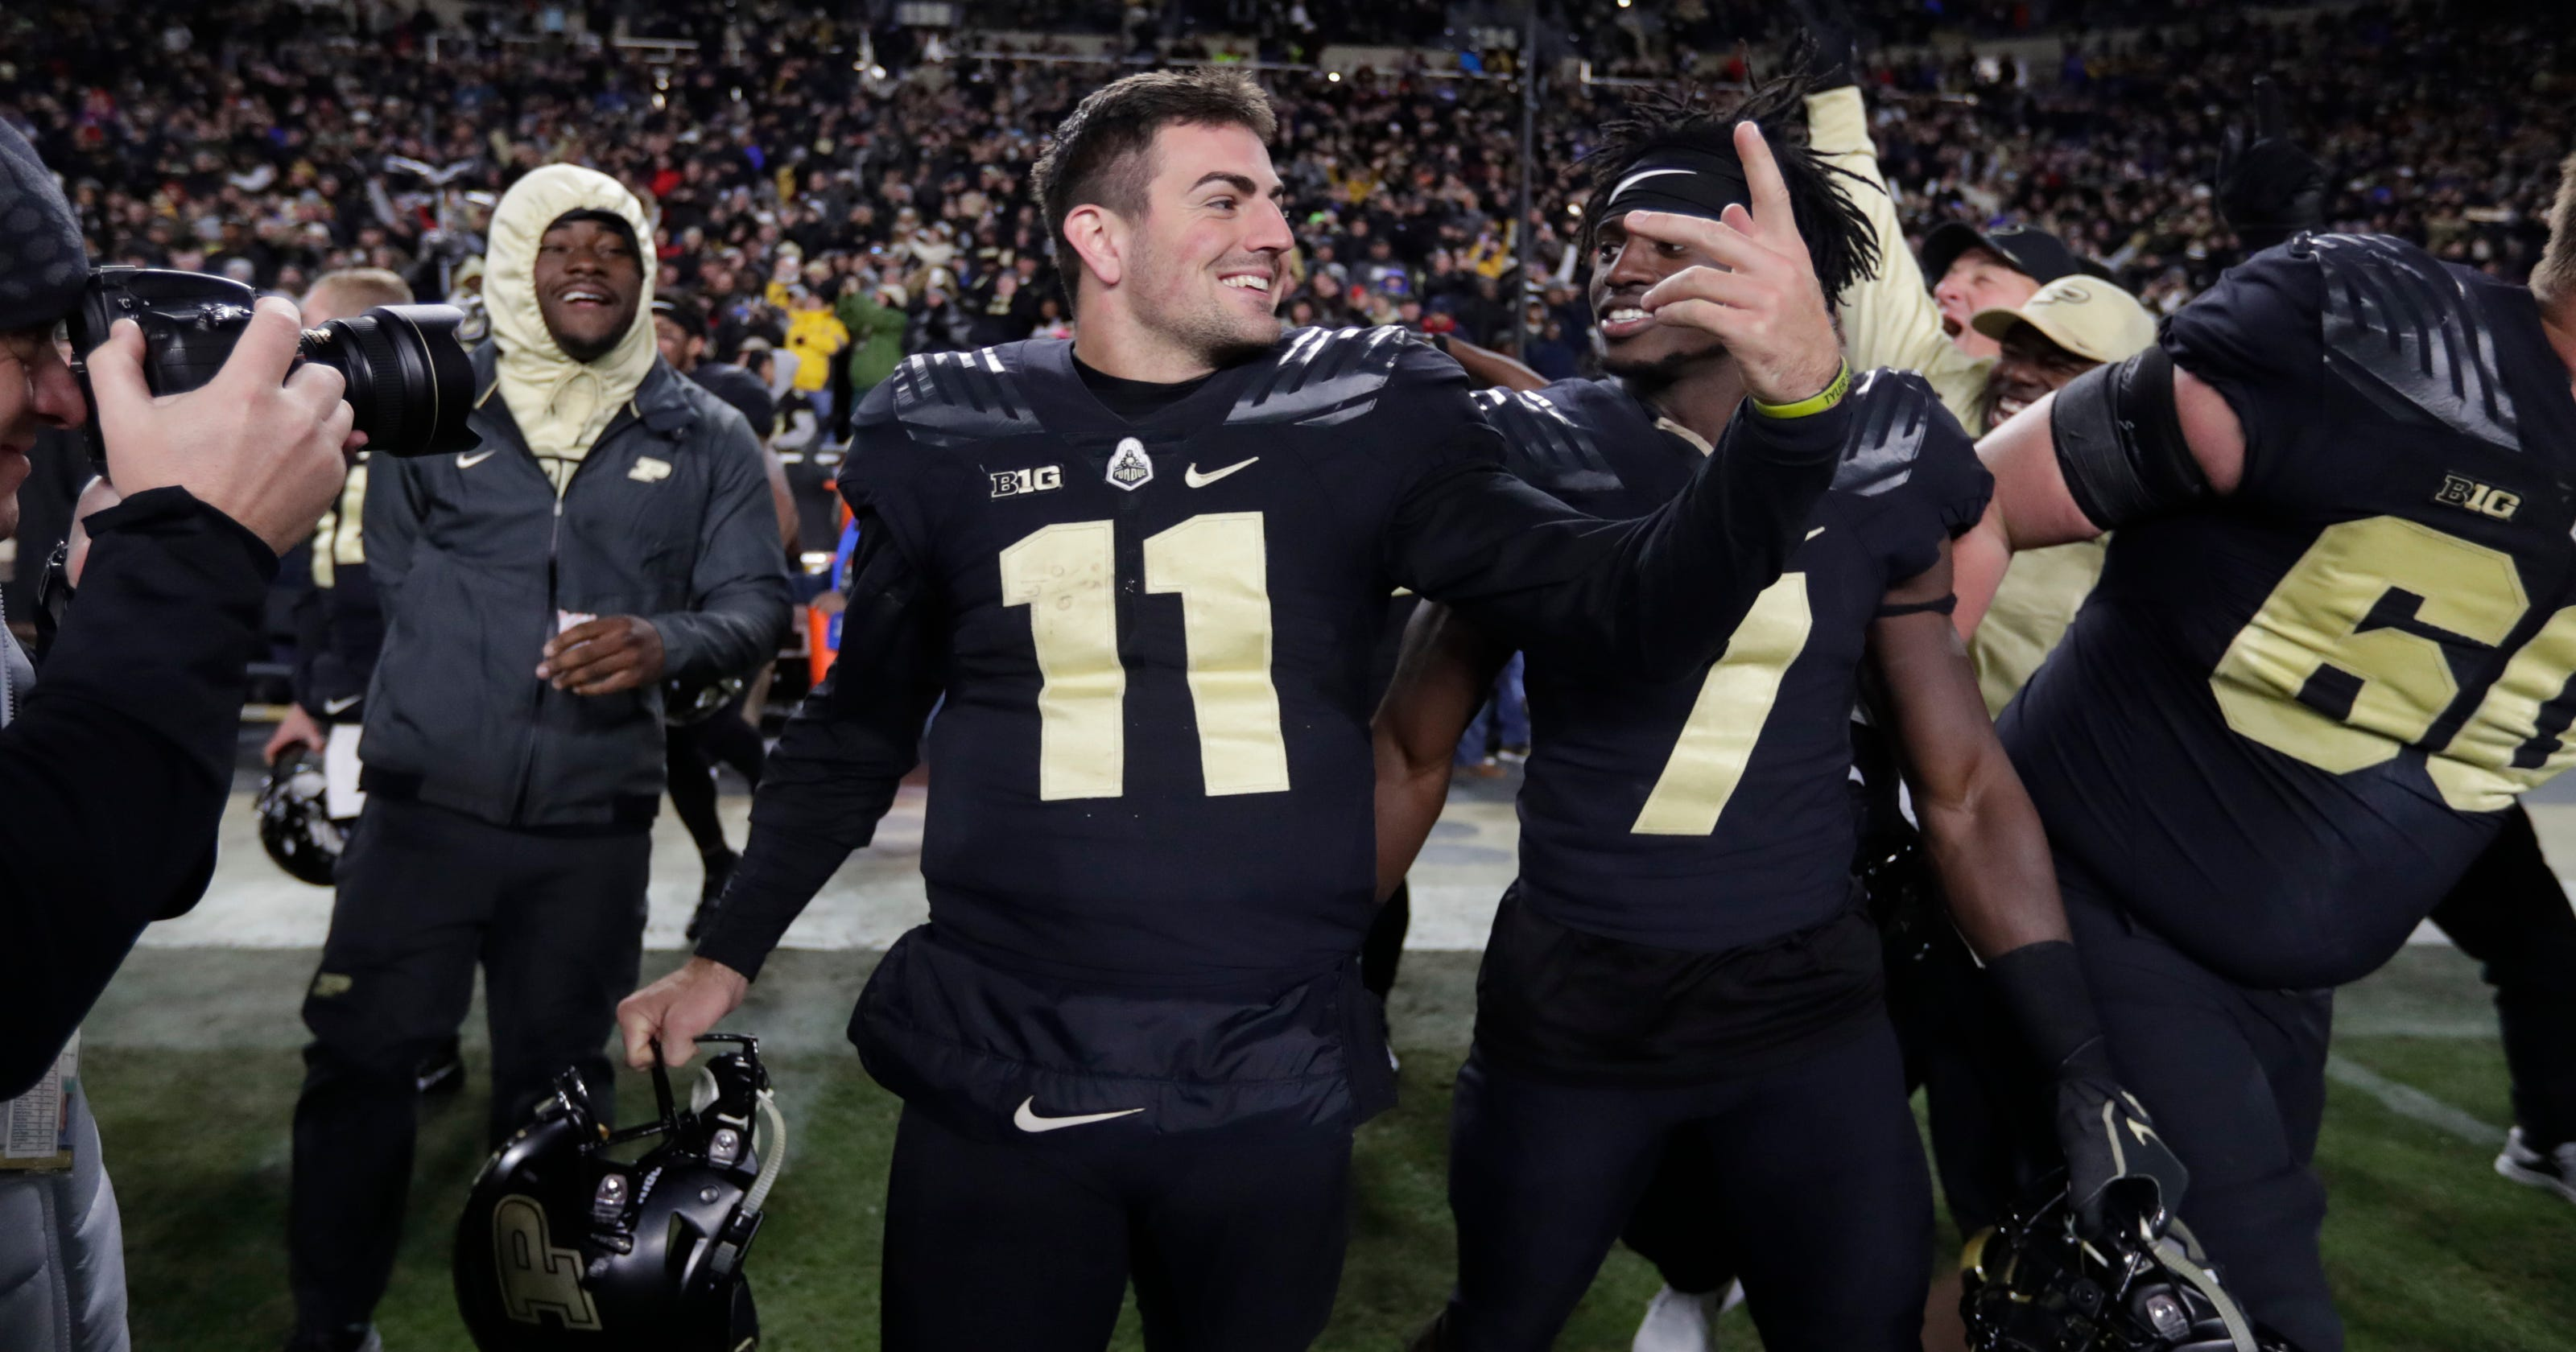 Purdue football sweeps Big Ten weekly awards ba101ba60